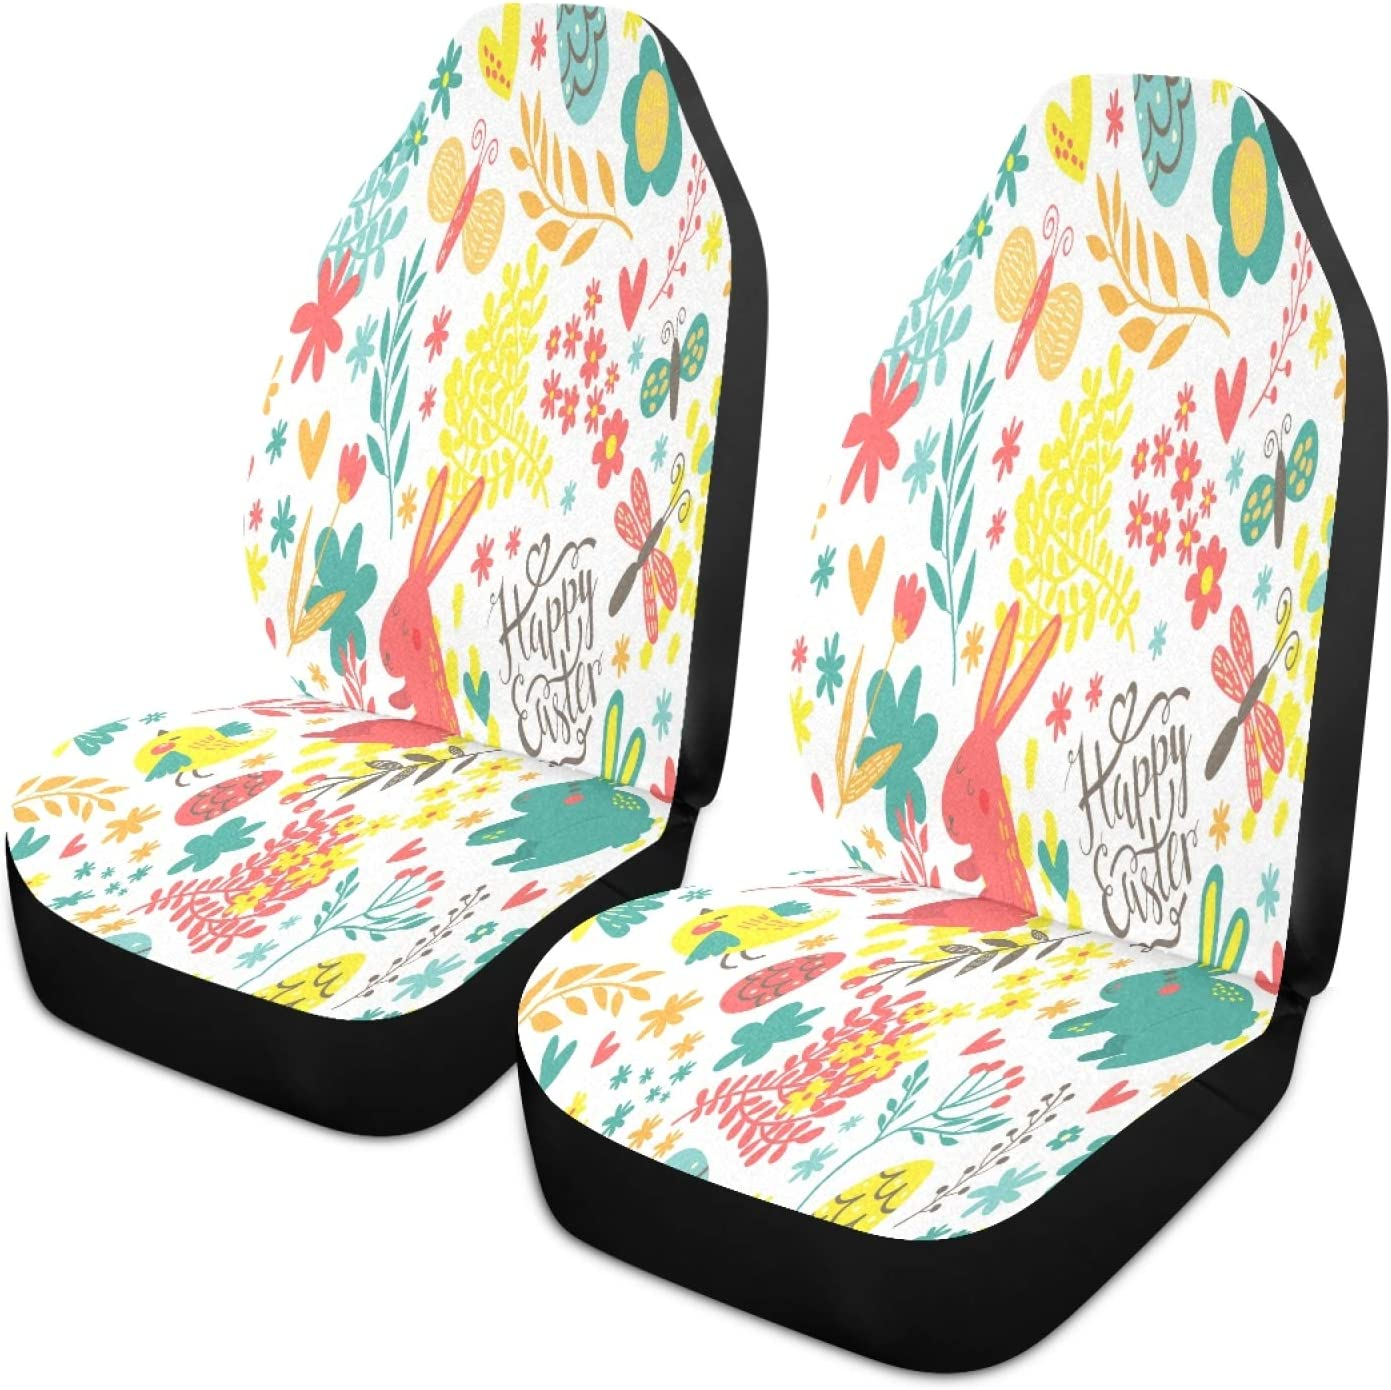 Nander Easter Colorful Eggs Rabbit Genuine Free Challenge the lowest price of Japan ☆ Shipping Heart Seat Covers In Car Easy